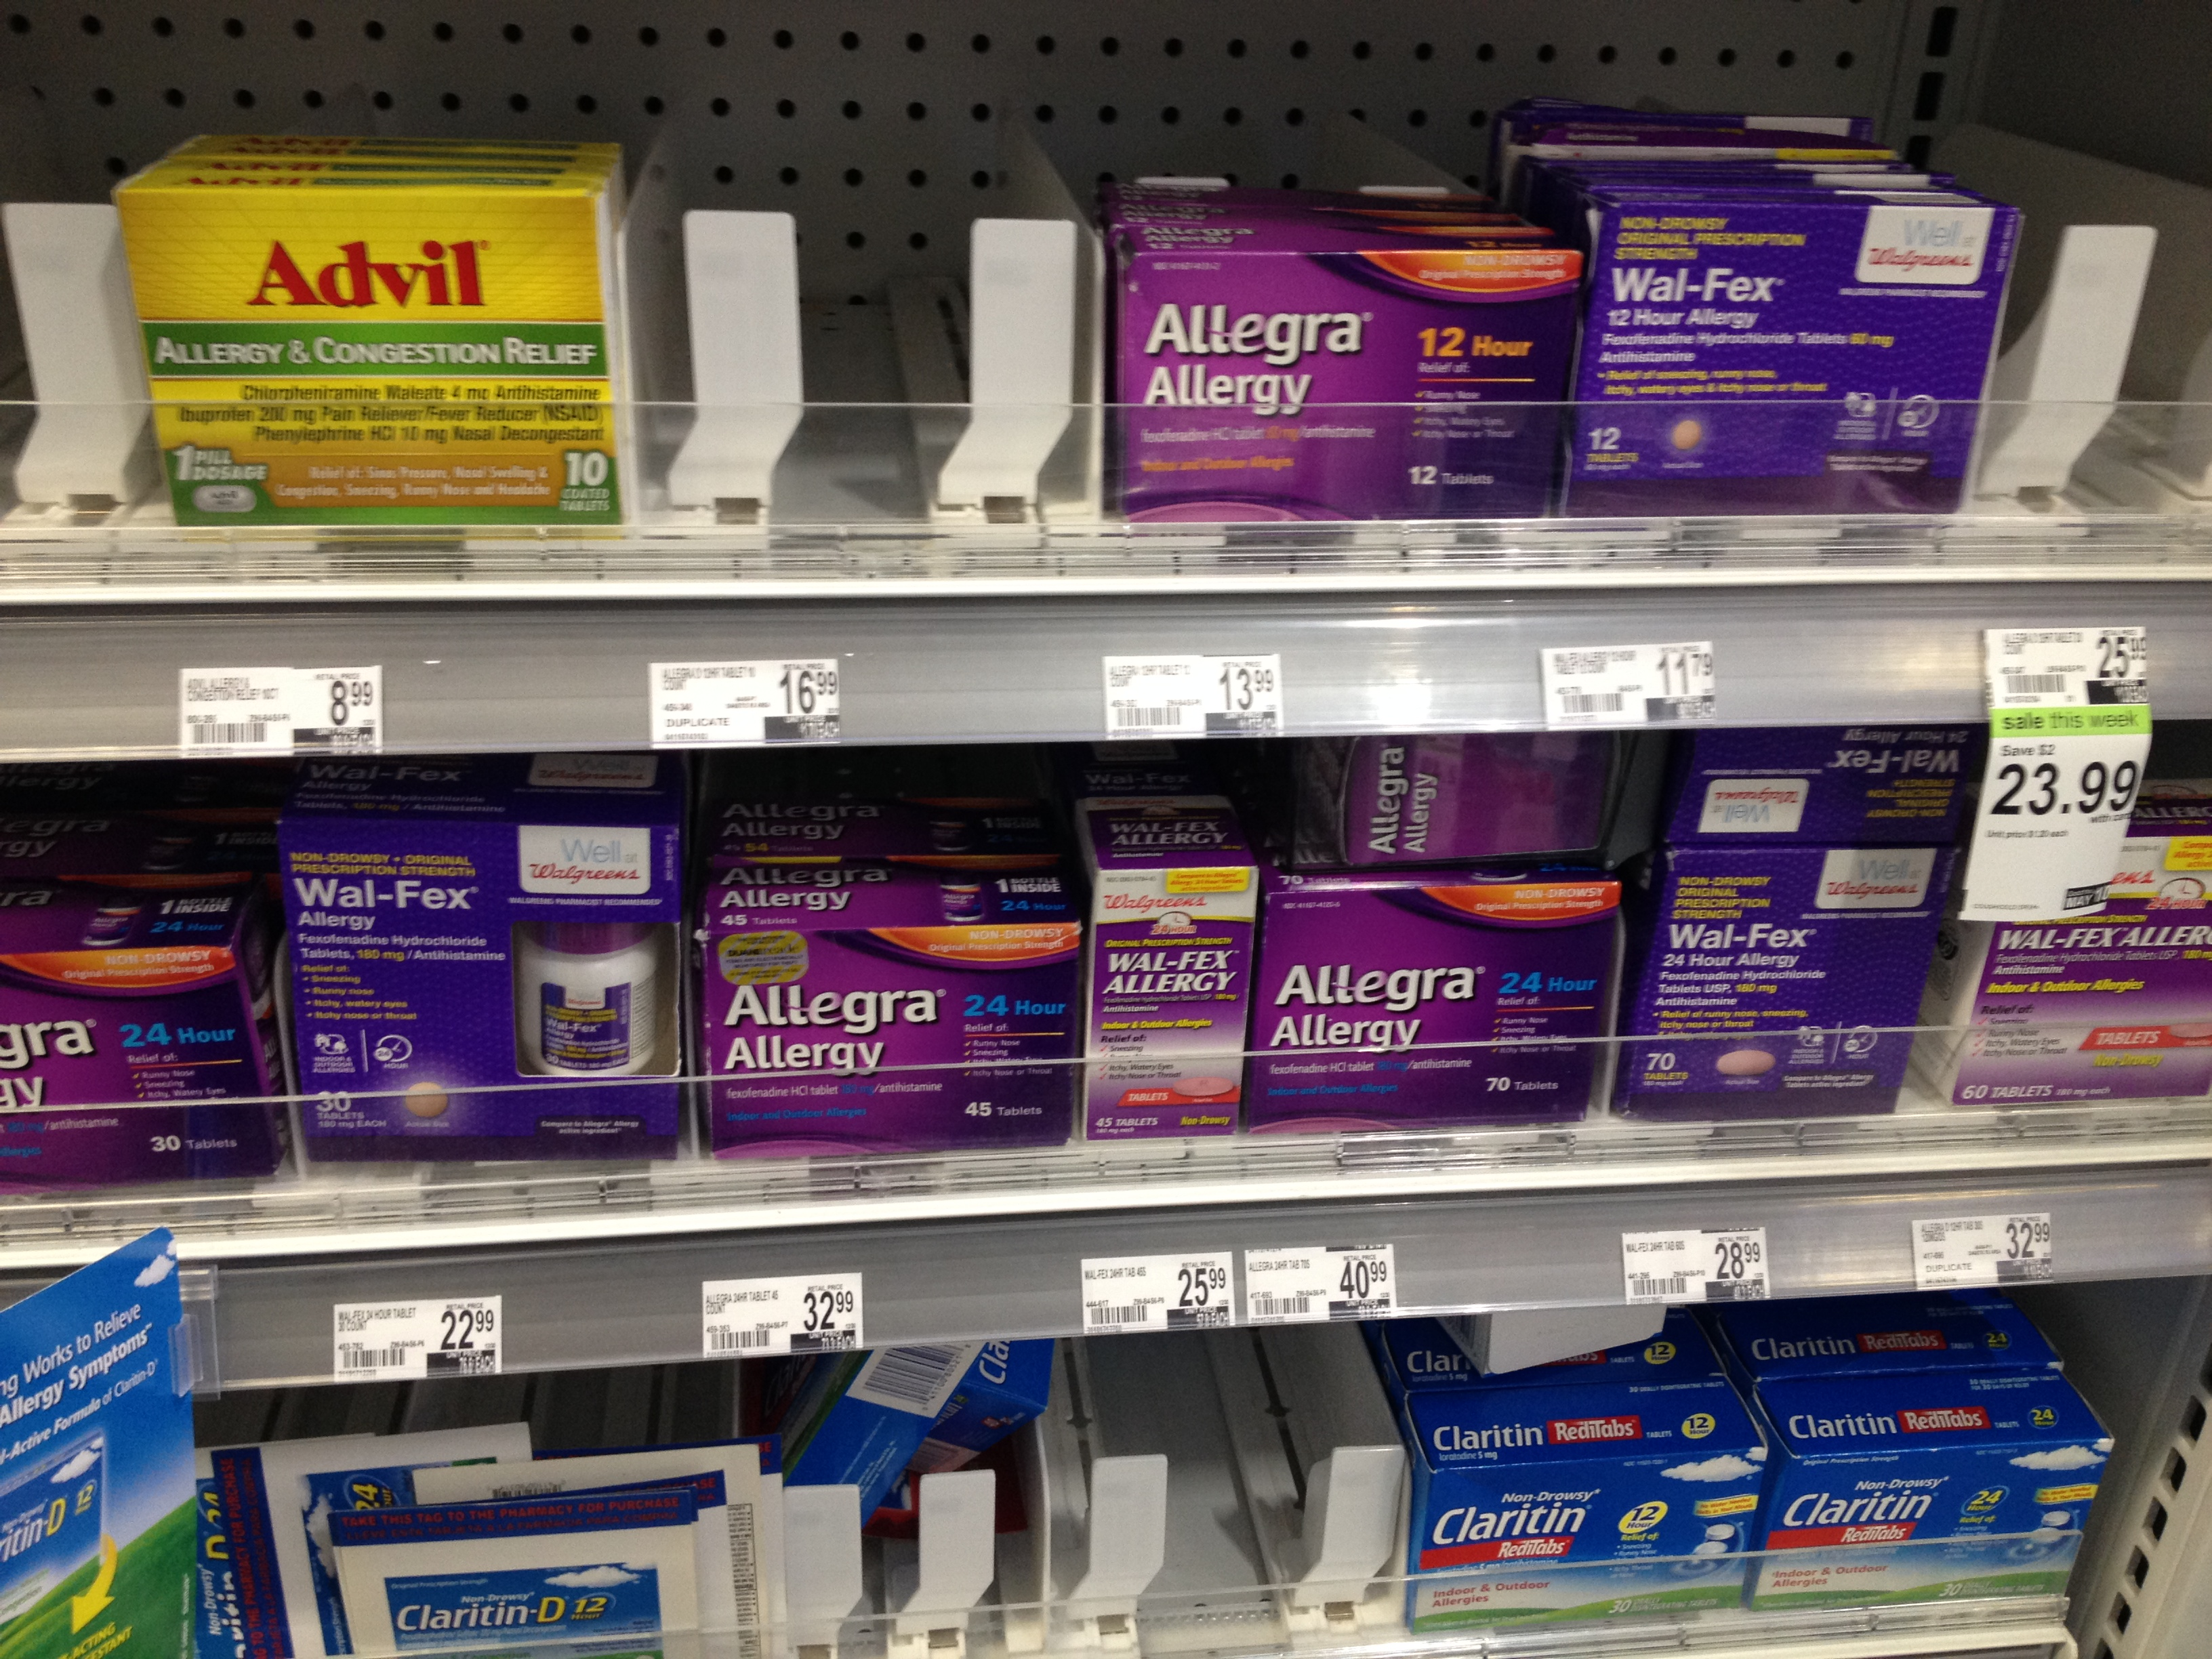 If you've got allergies, Duane Reade apparently has your back. Or, uh, your nose.